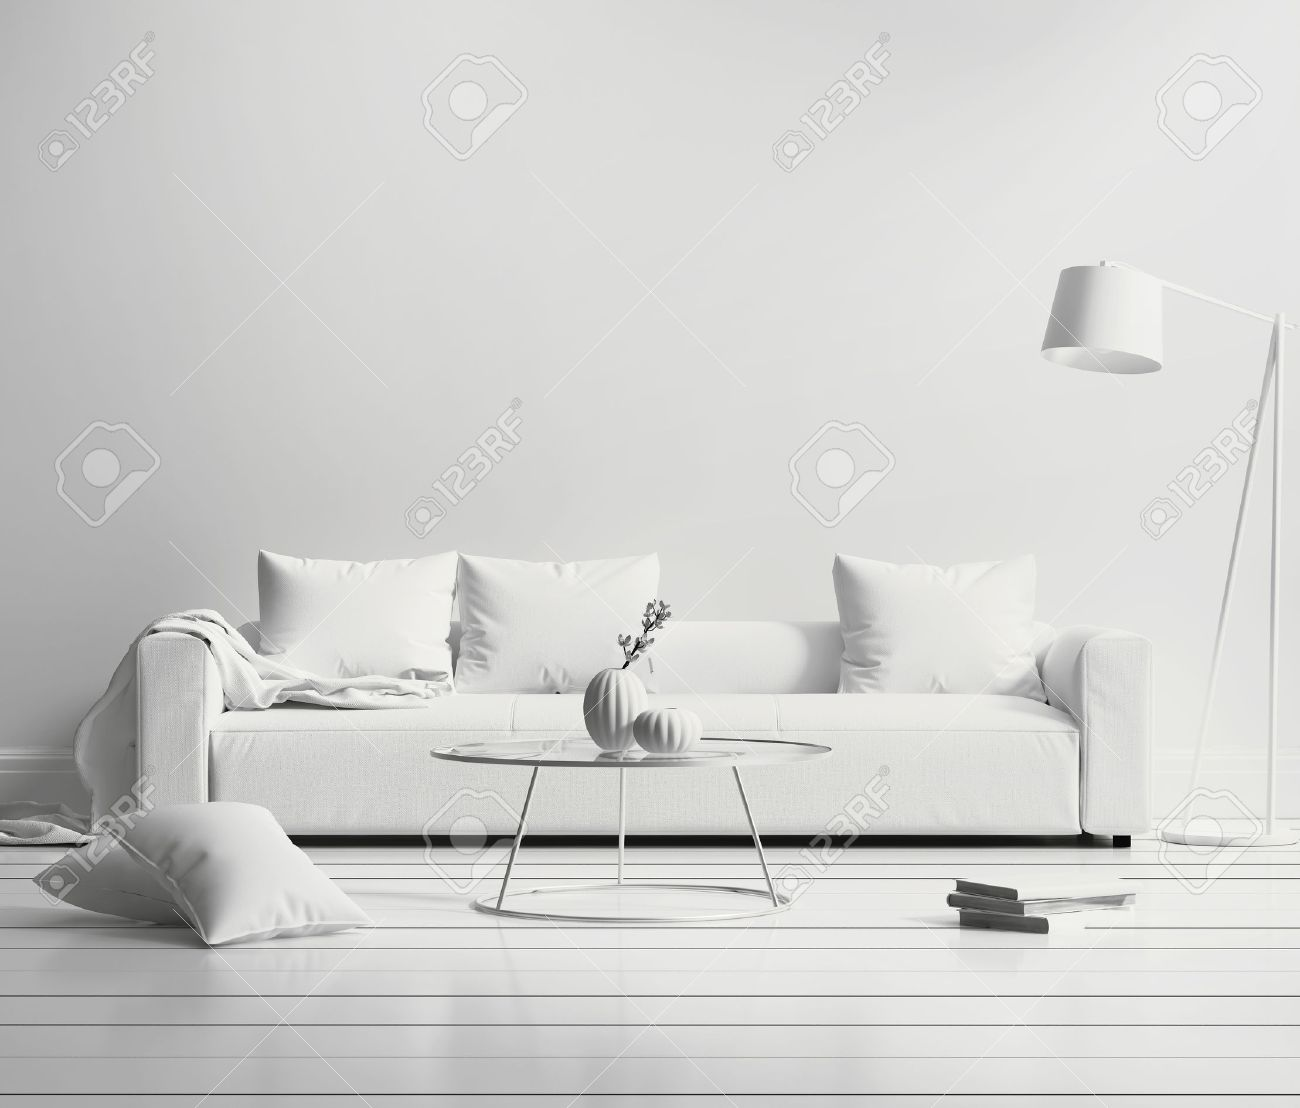 White Minimal Contemporary Interior Living Room Stock Photo, Picture ...